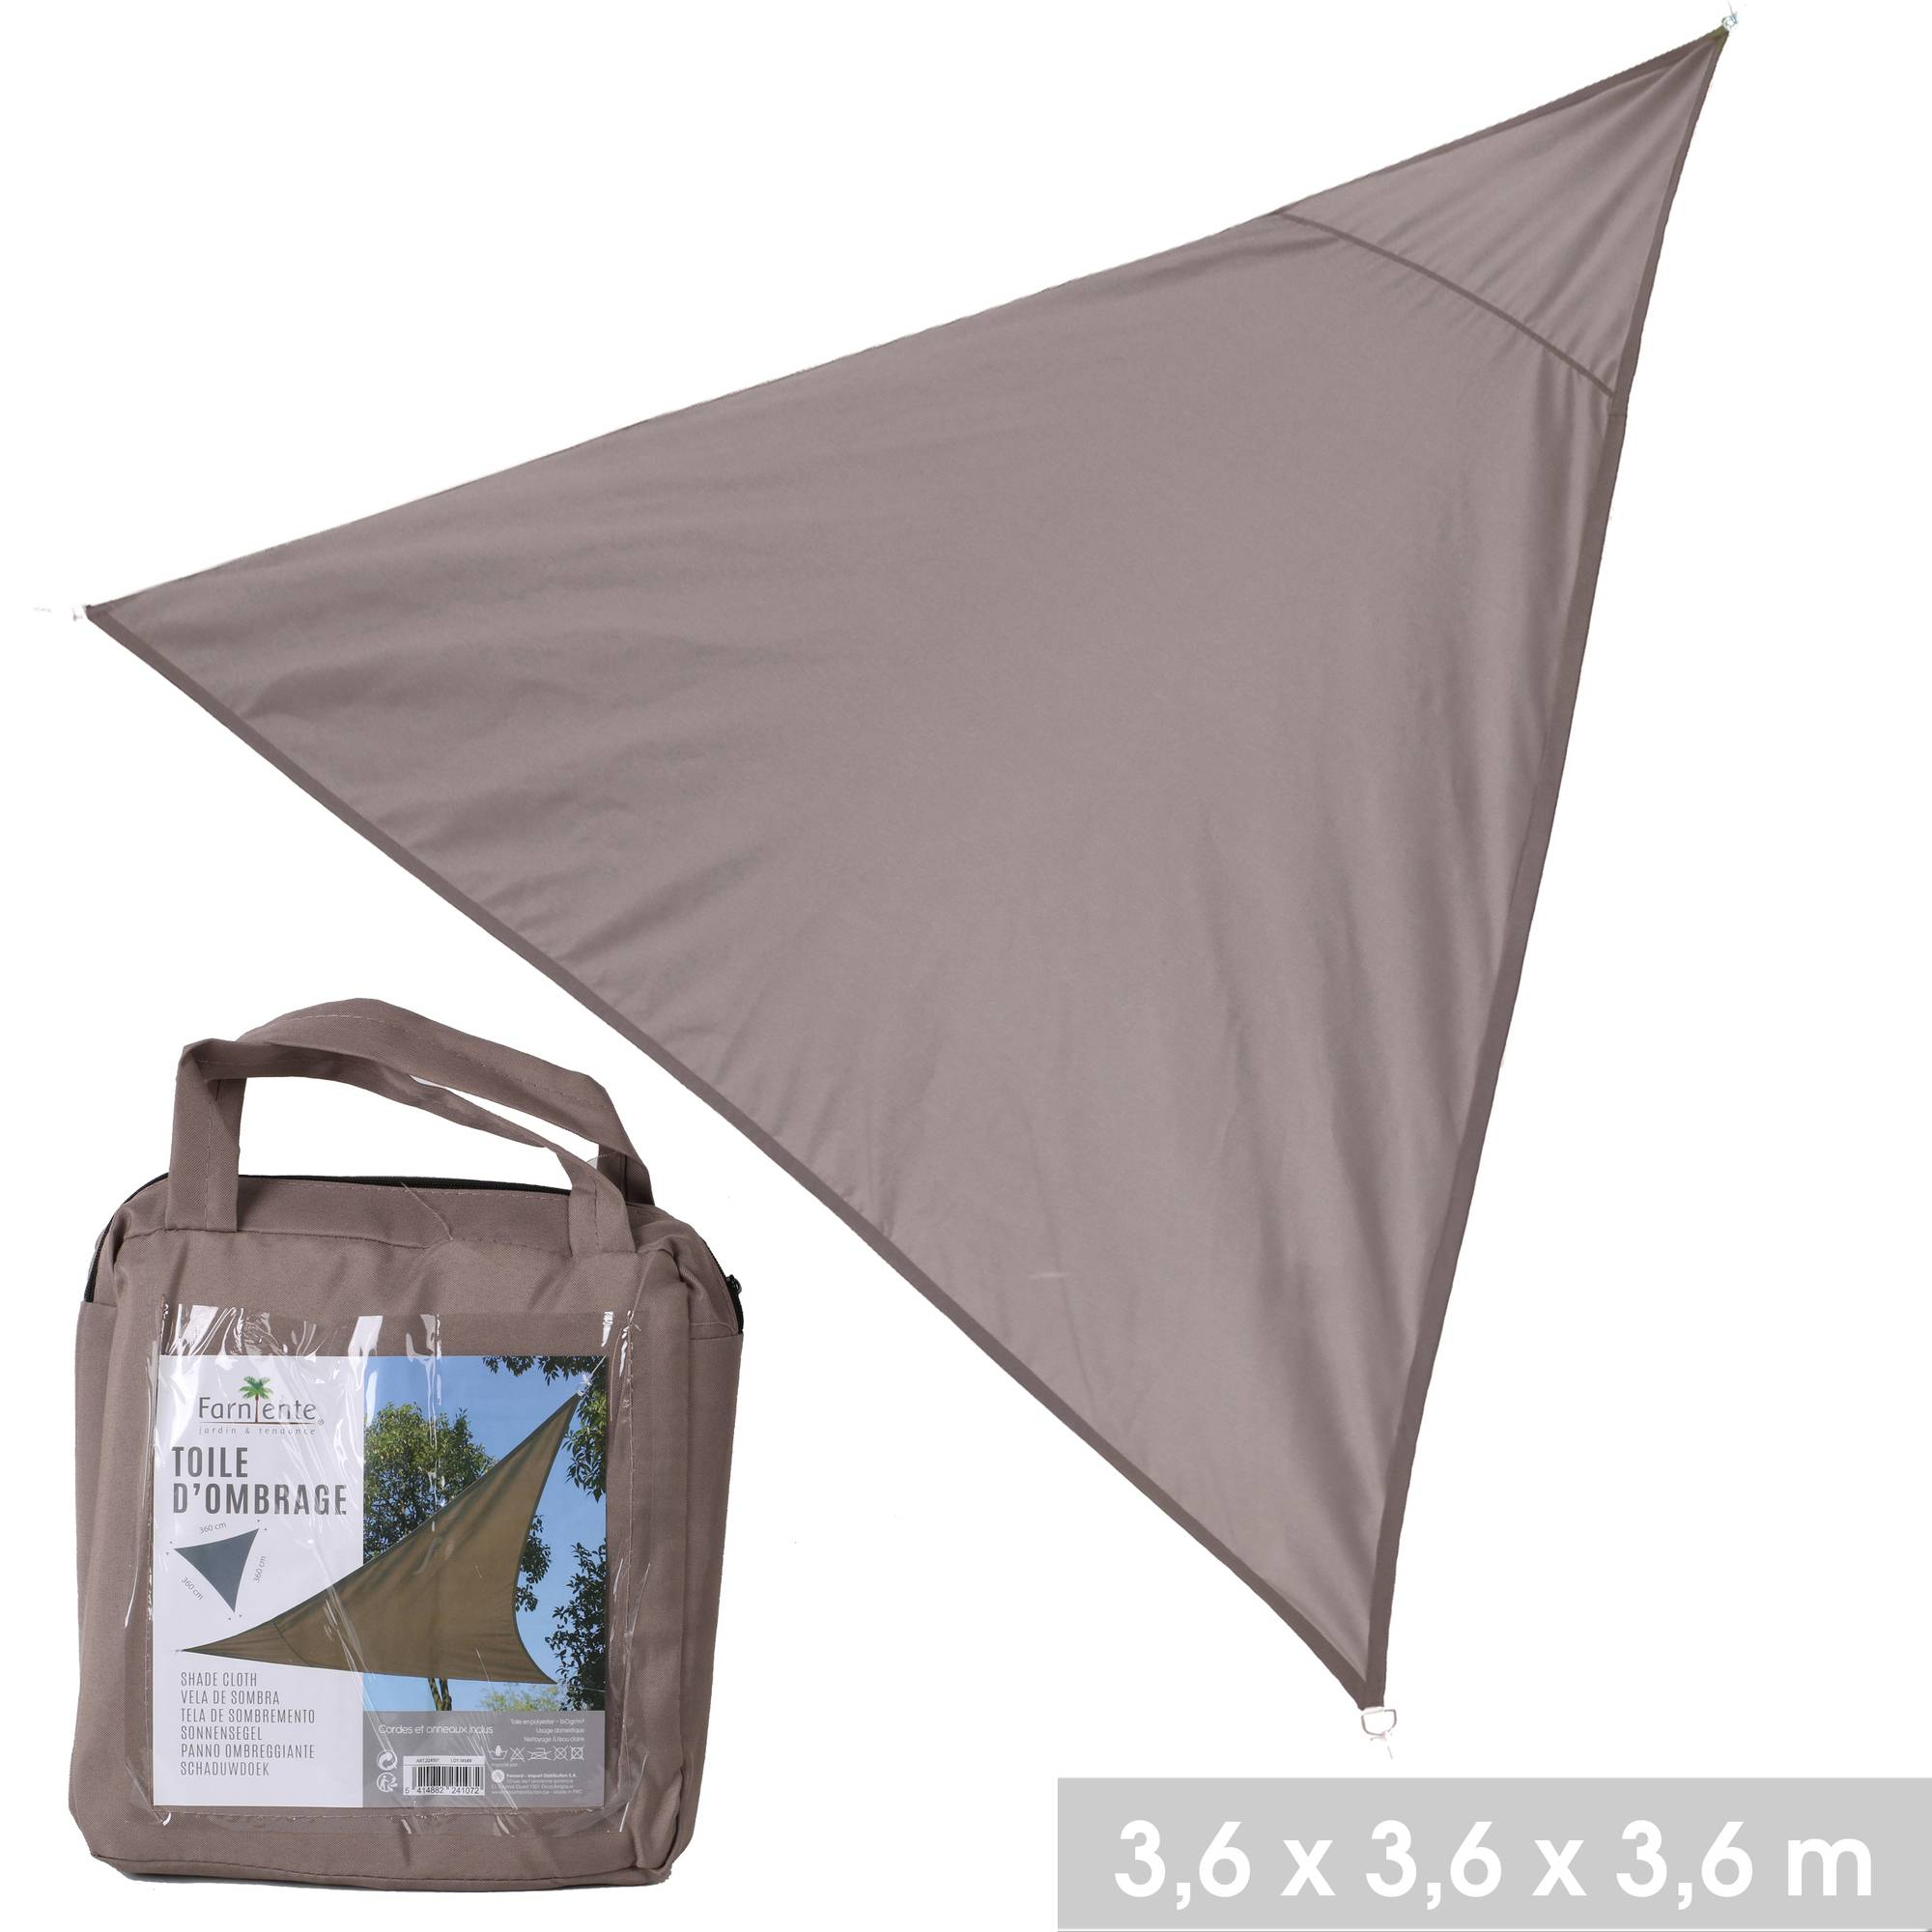 NOTRE SÉLECTION Toile d'ombrage triangle en polyester 3,6 x 3,6 x 3,6 m taupe